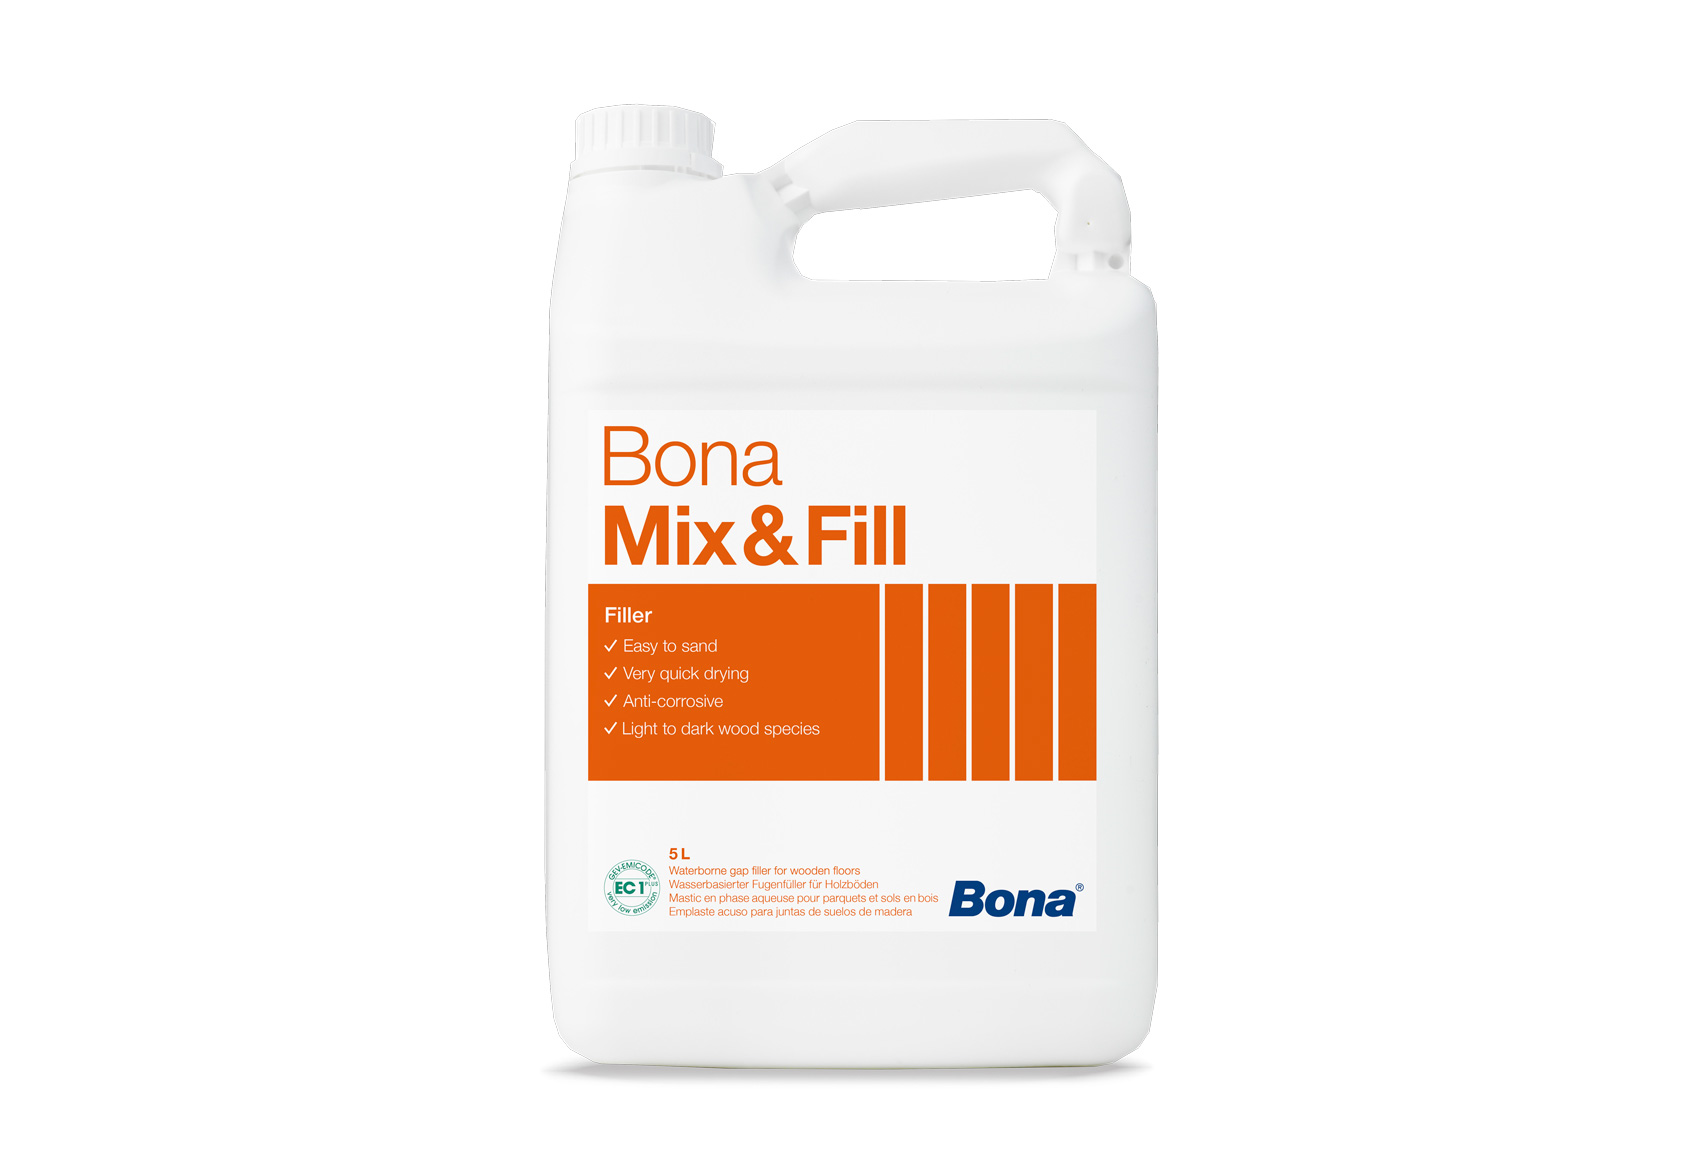 Bona Mix & Fill